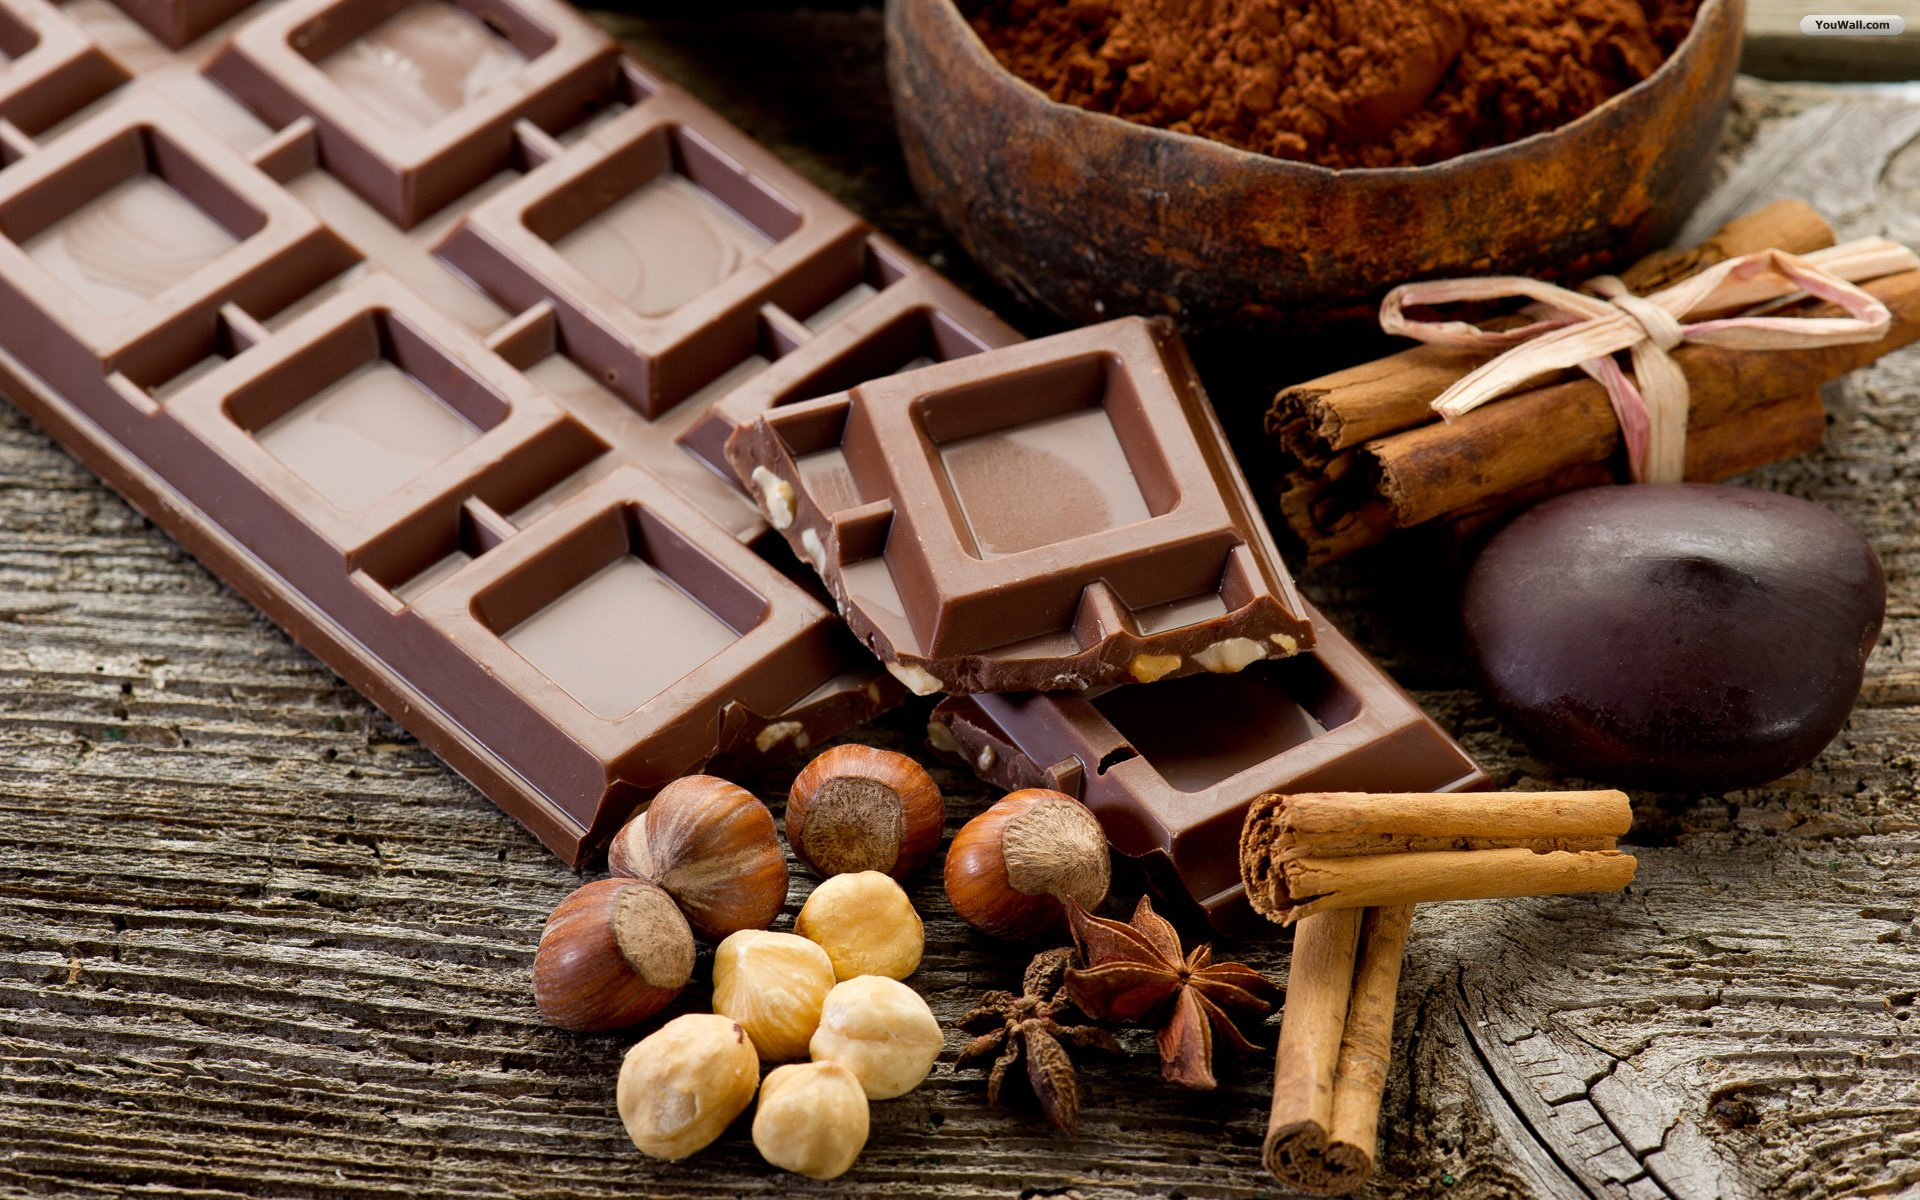 Amazing Free Chocolate HD Wallpapers  TechLovers l Web Design 1920x1200